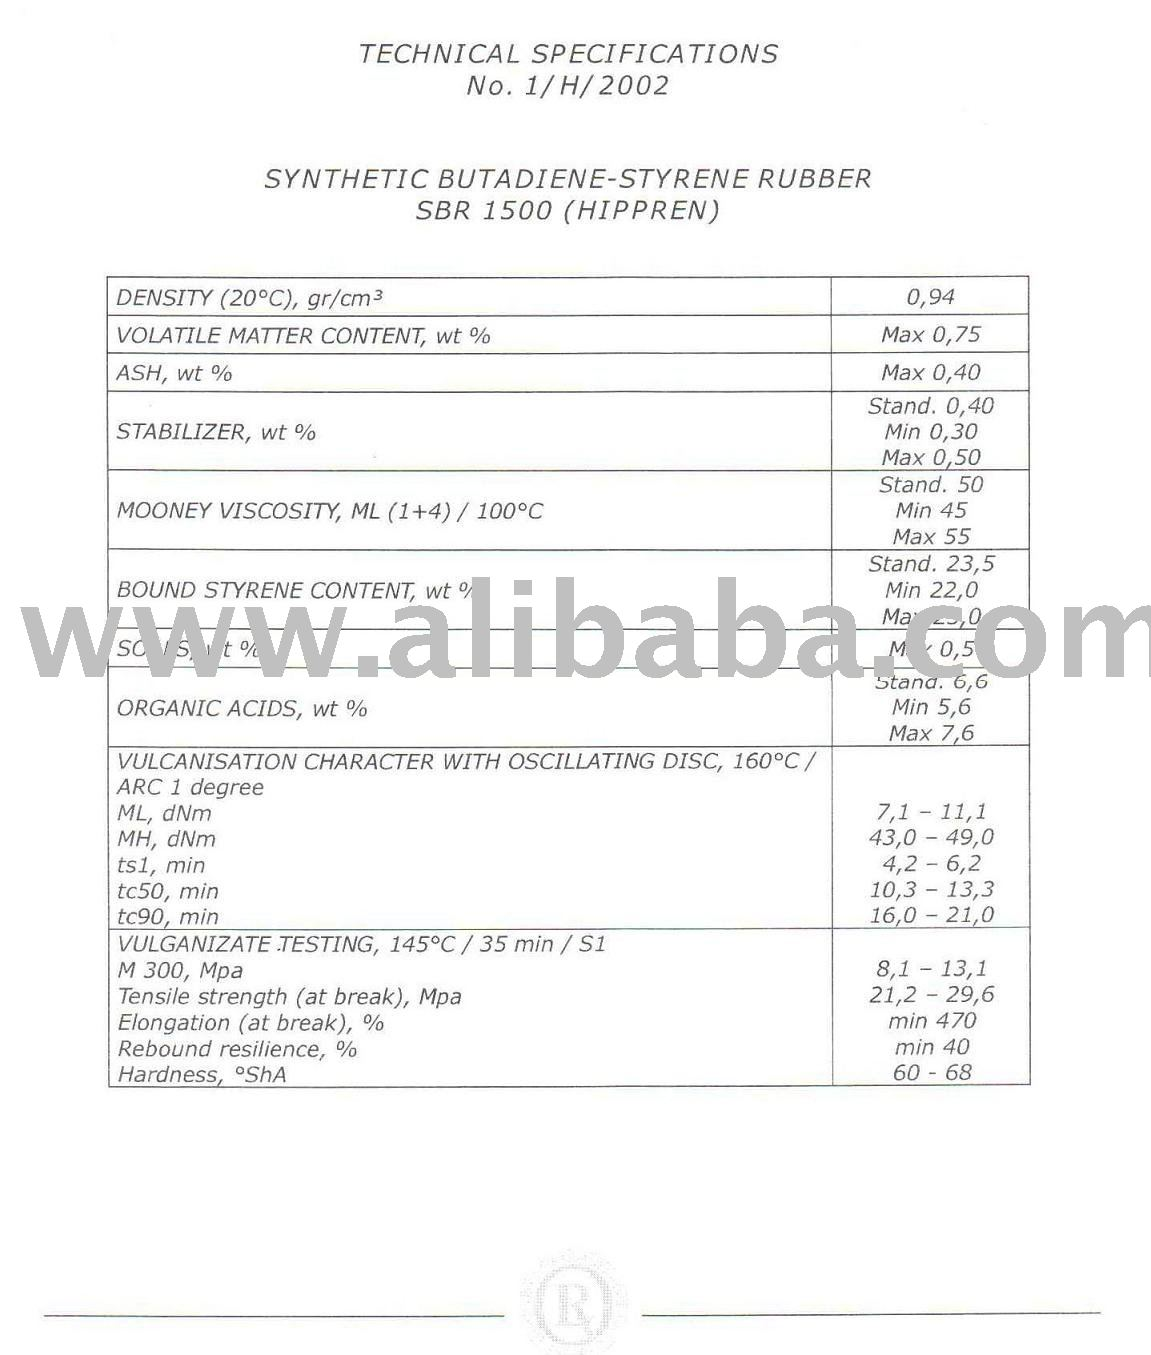 SBR 1500 Synthetic Styrene-Butadiene Rubber